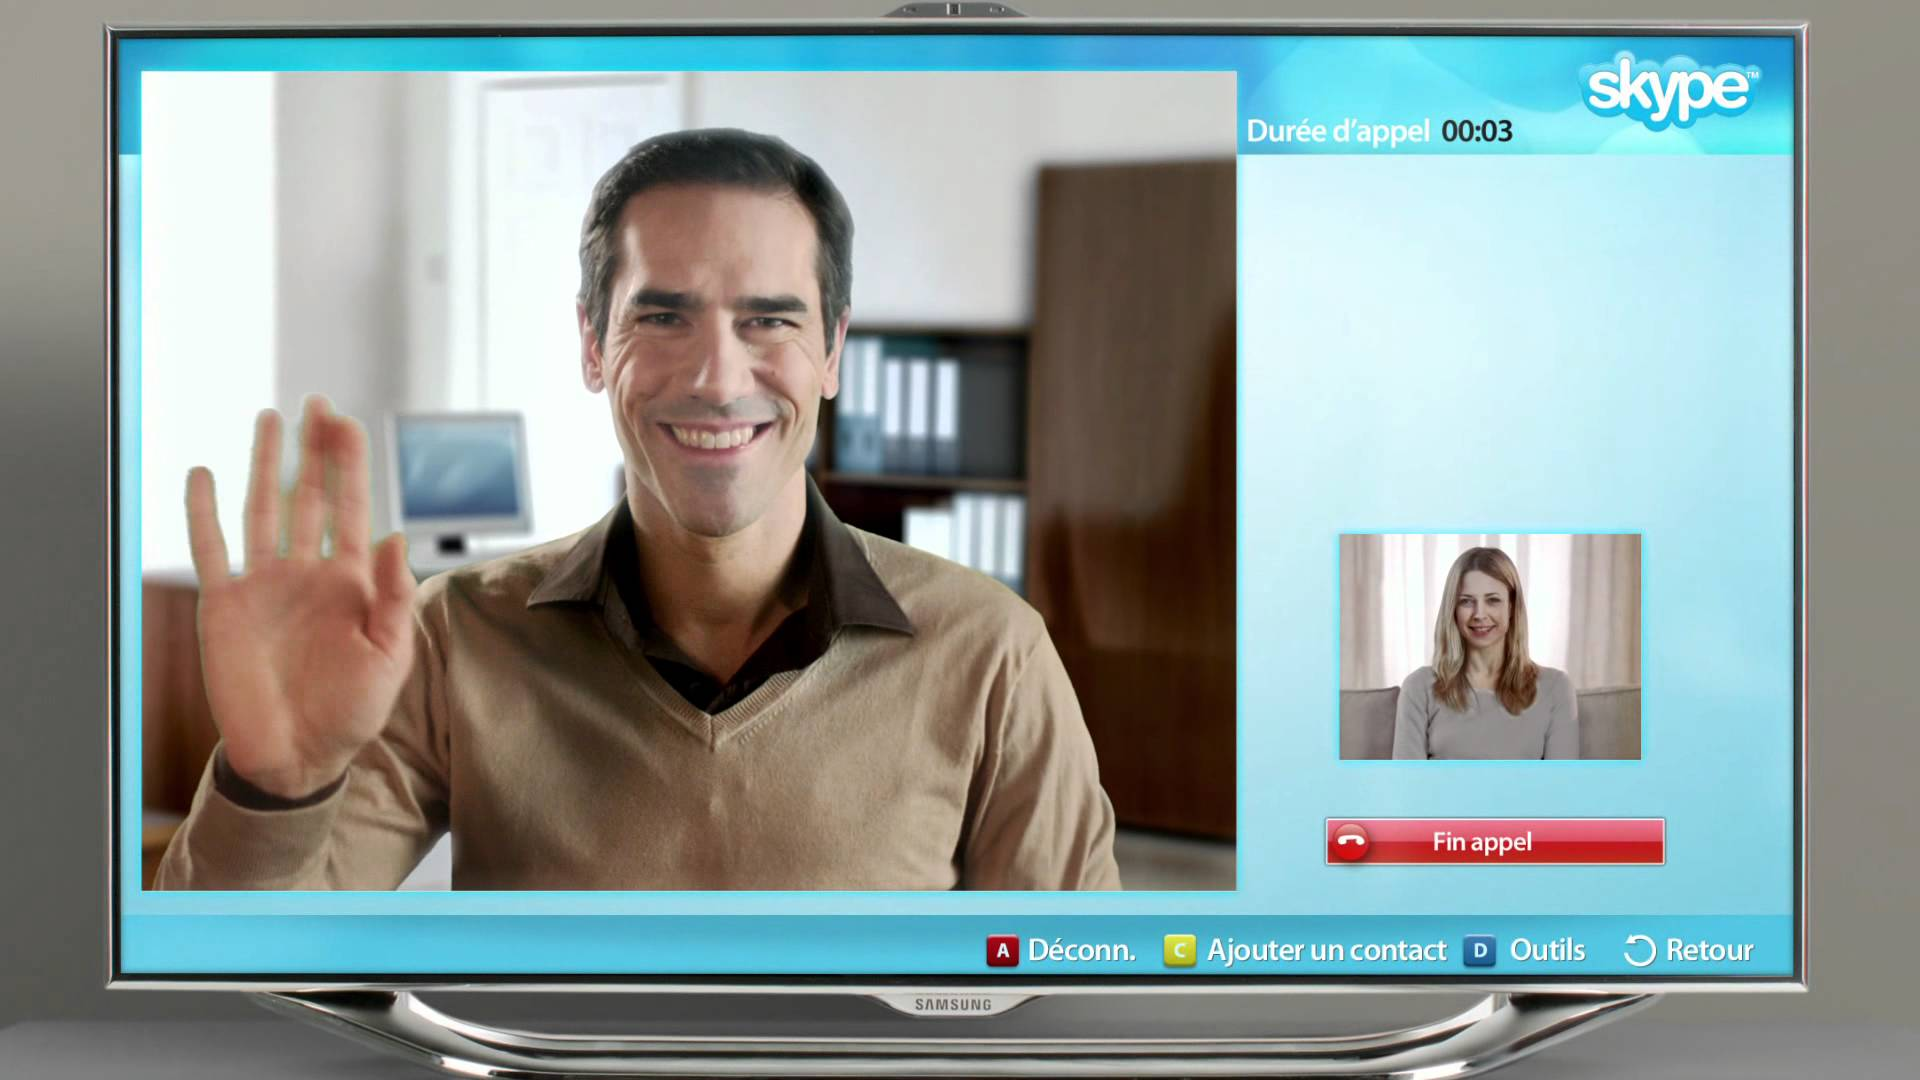 skype-app-smart-tv